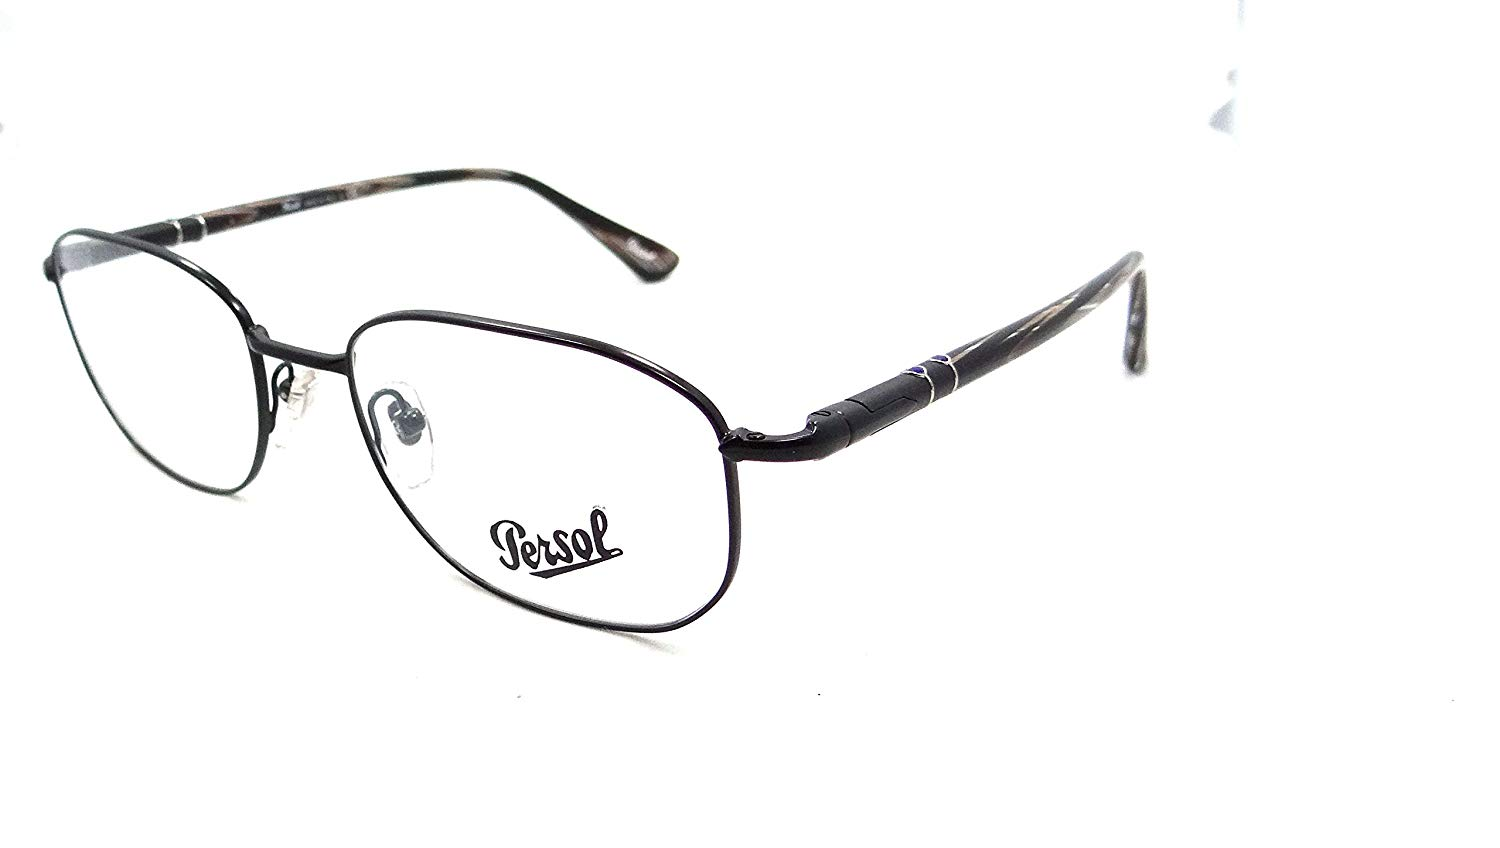 9daa45eabcae Get Quotations · Persol Rx Eyeglasses Frames 2432 V 1055 53x18 Black with  Horn Made in Italy